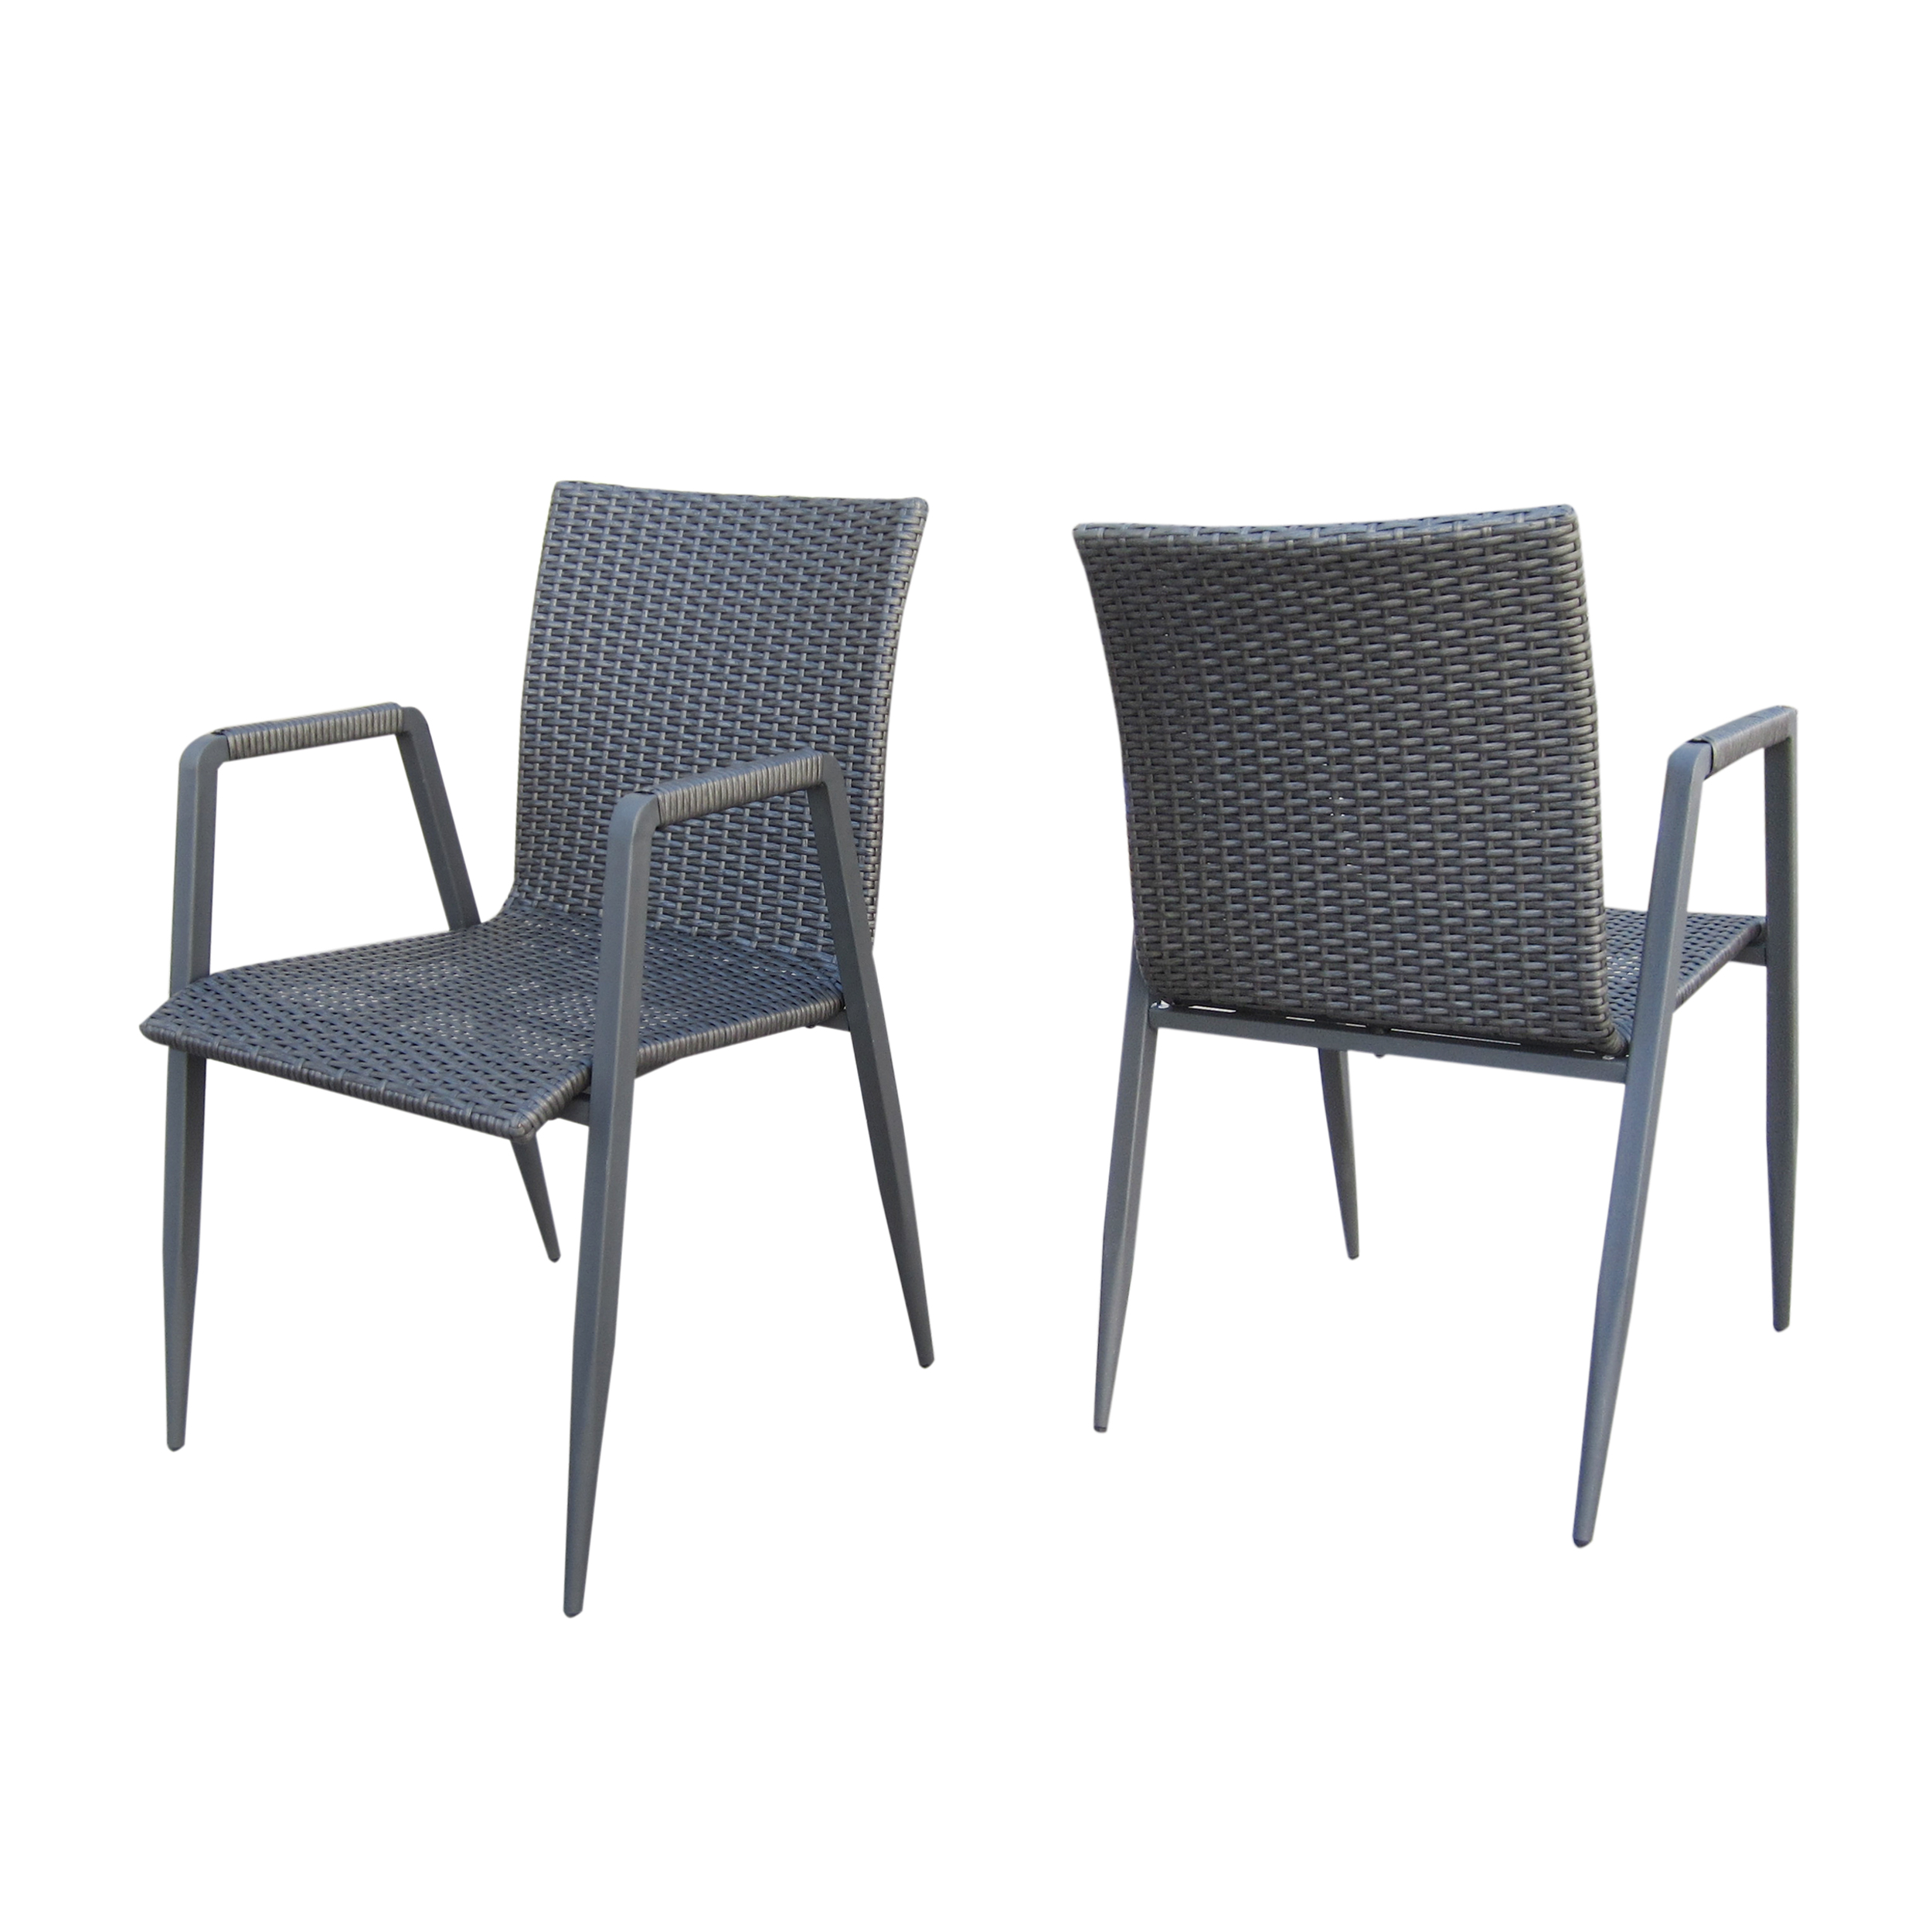 Belle Outdoor Wicker Dining Chairs, Set of 2, Grey